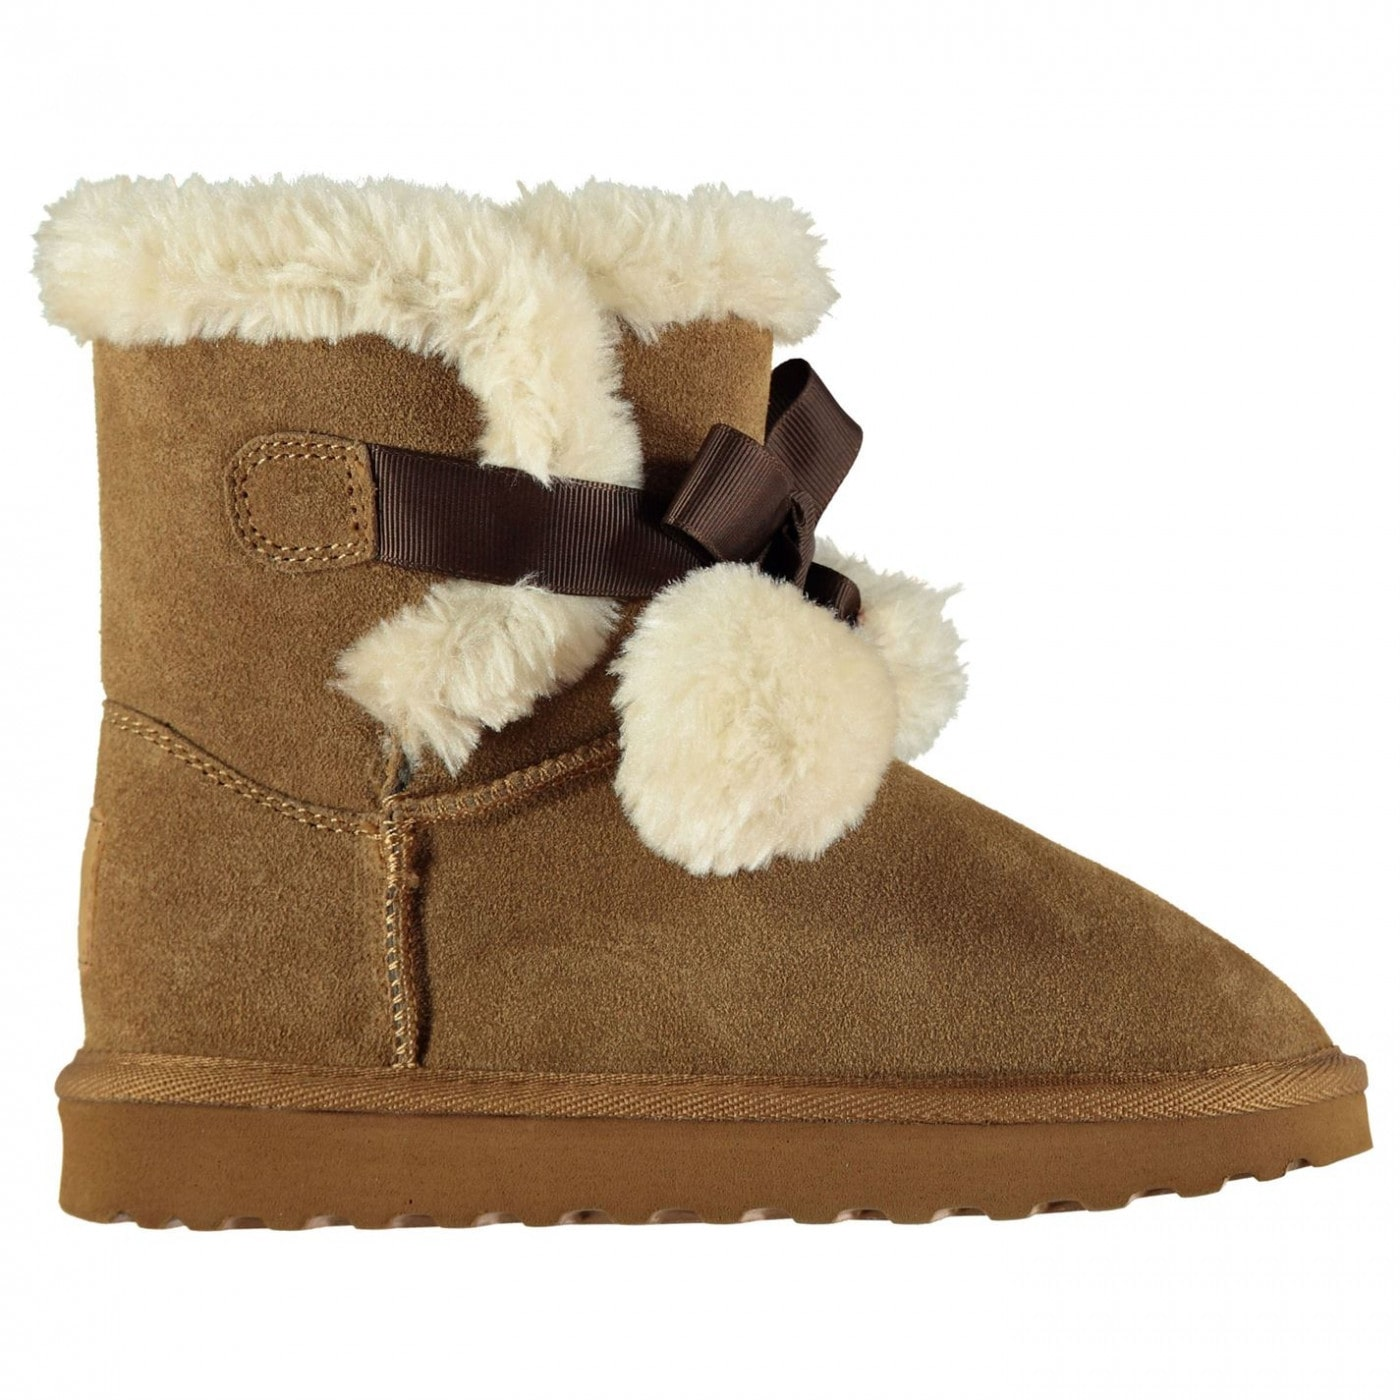 SoulCal Carmel Snug Boots Child Girls